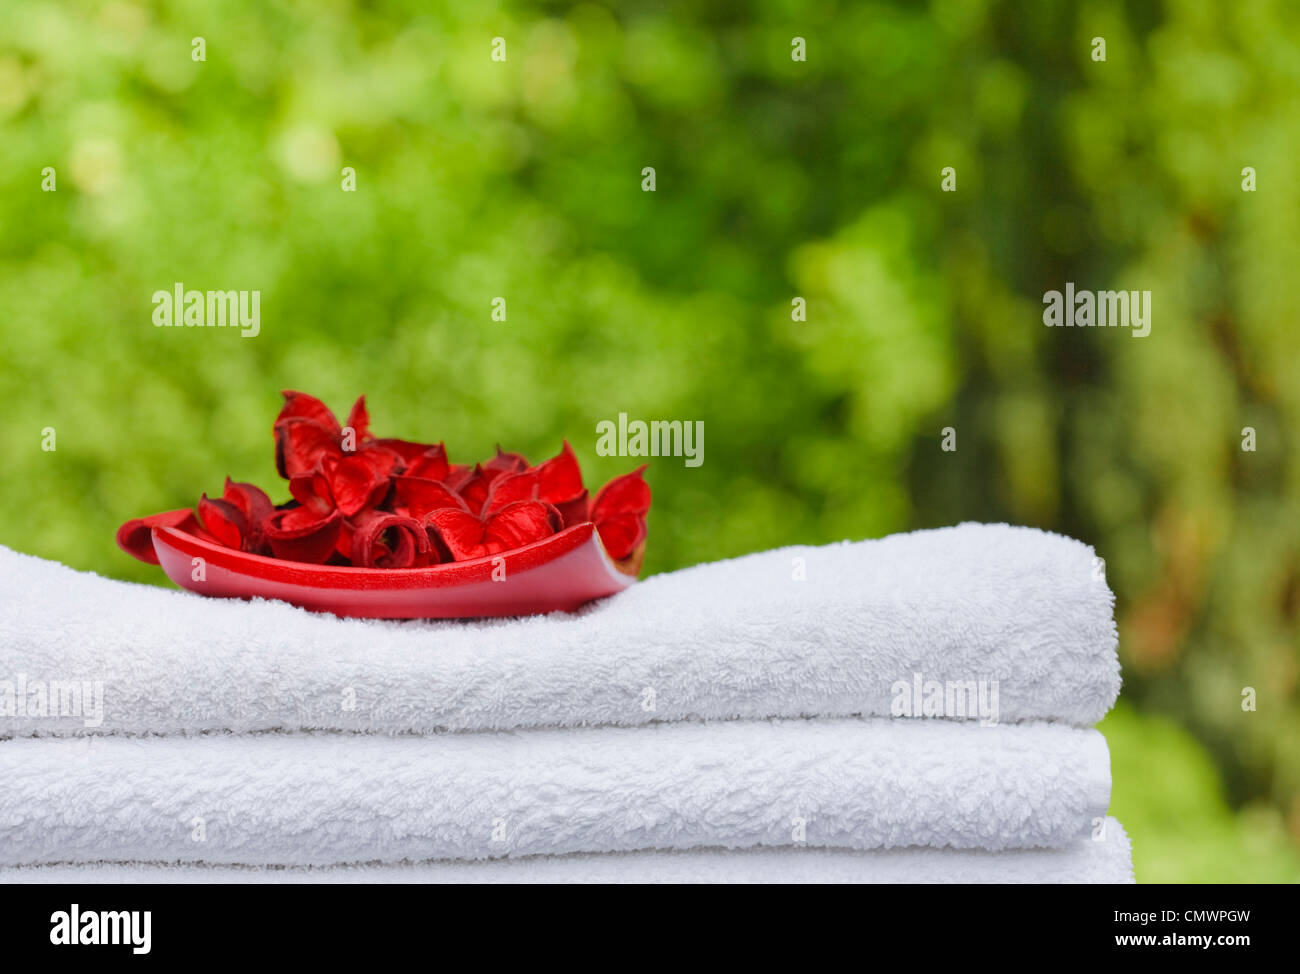 Pile of fresh white towels and rose petals with greenery in the background, ideal for depicting leisure or a spa - Stock Image